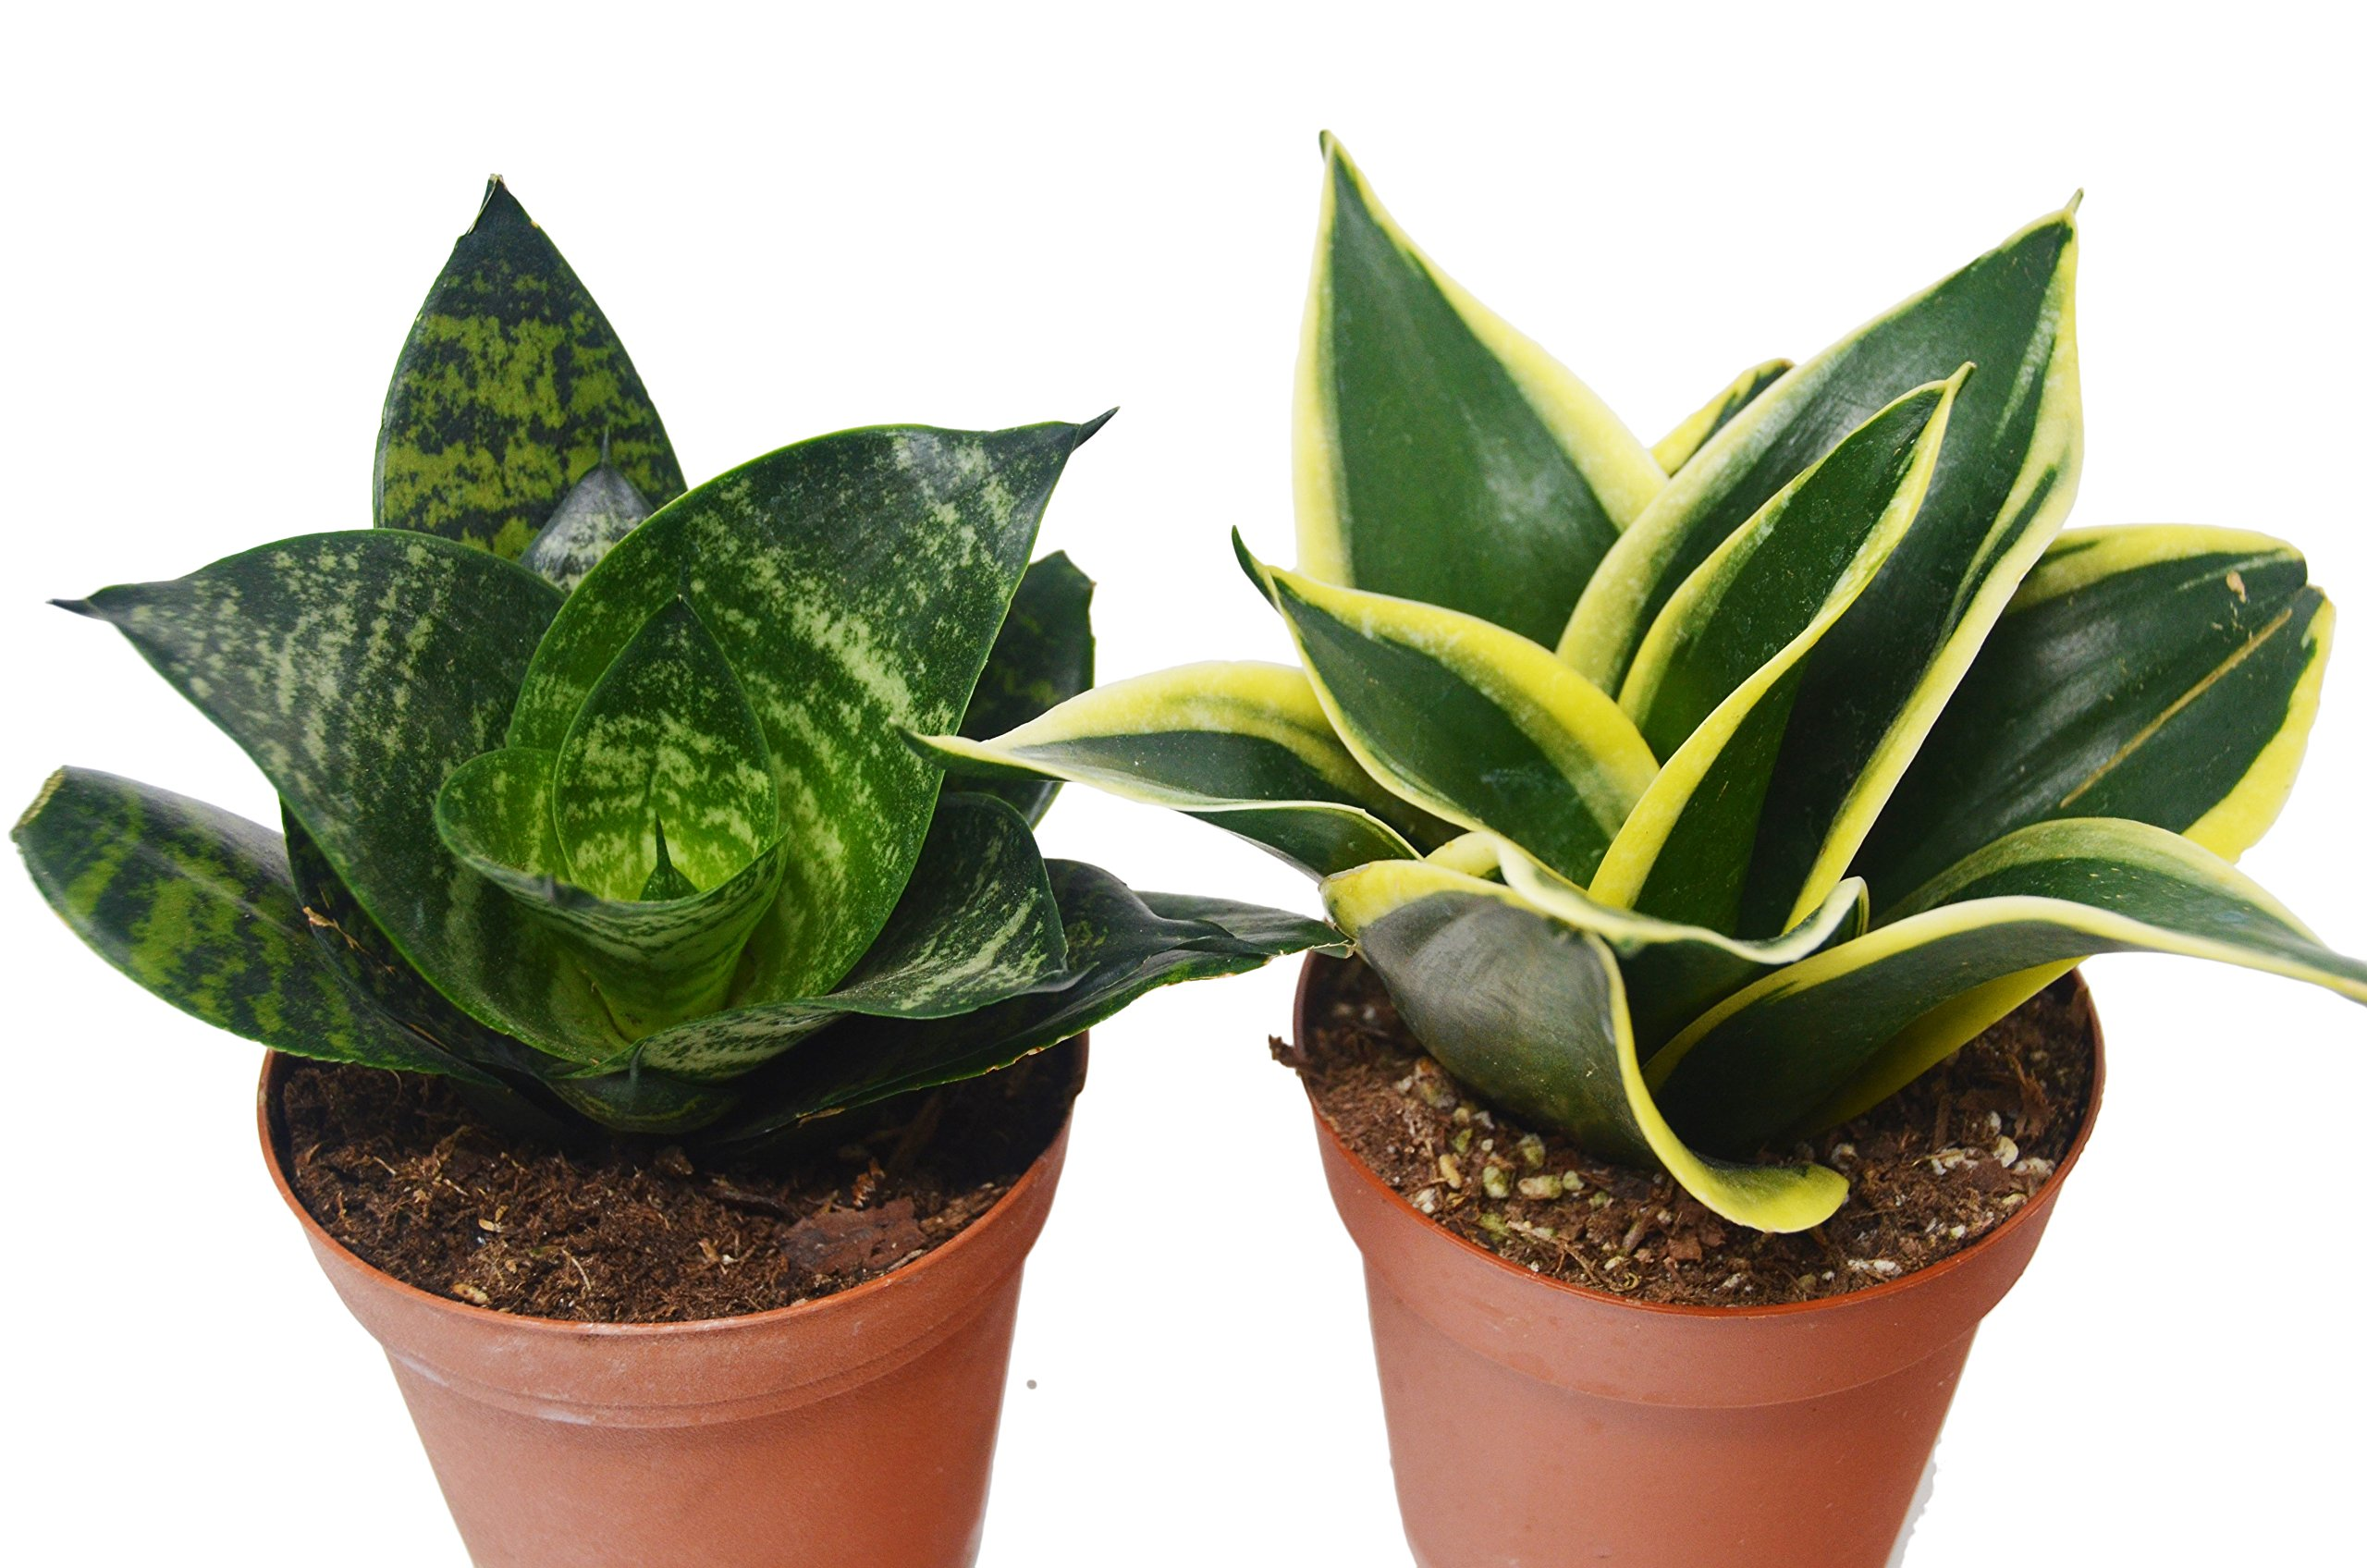 2 Different Snake Plants in 4'' Pots - Sansevieria - Live Plant - FREE Care Guide